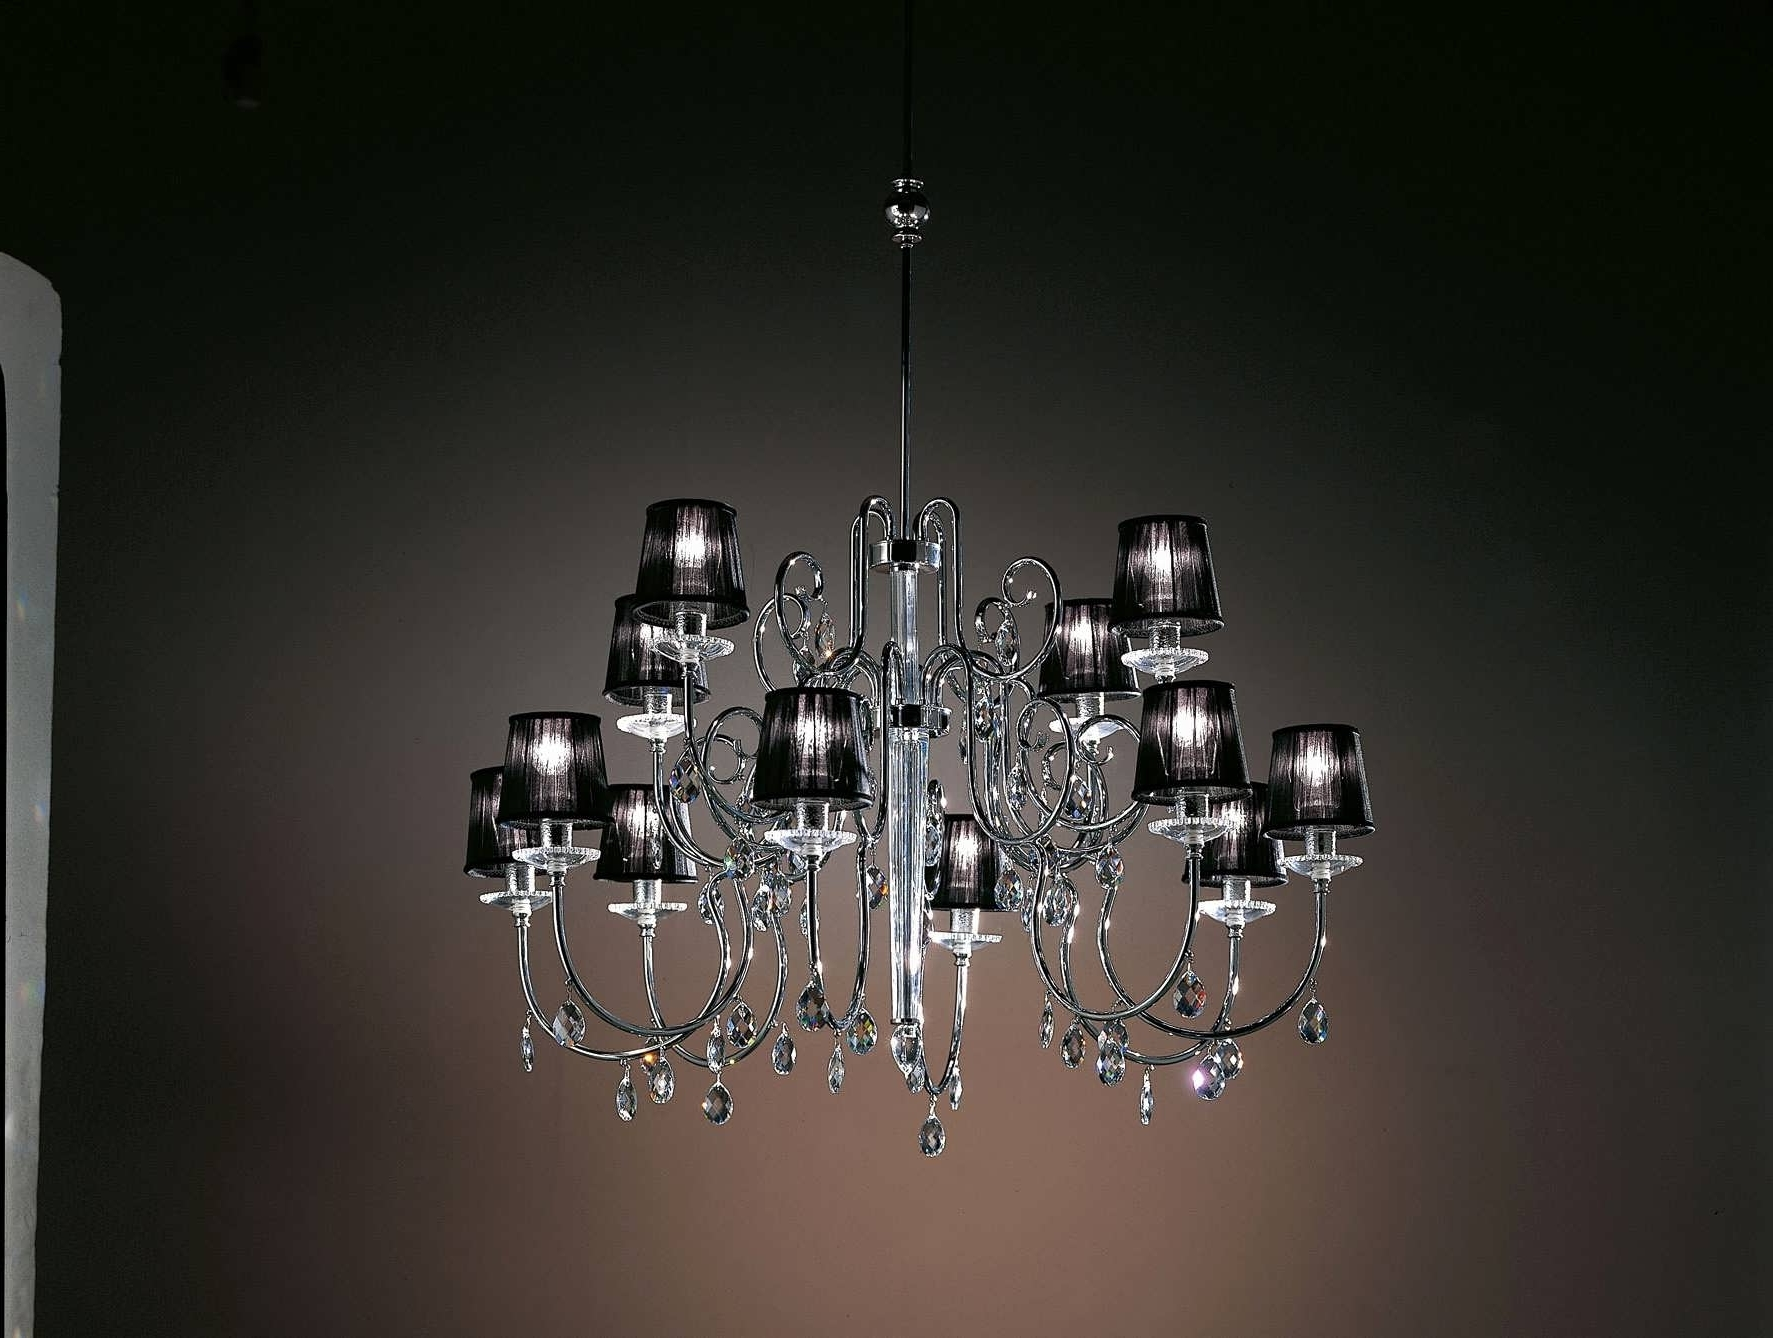 Light : Modern Chandelier Lighting Small Black Keywordrelevance With Regard To Well Known Modern Chandelier Lighting (View 15 of 20)